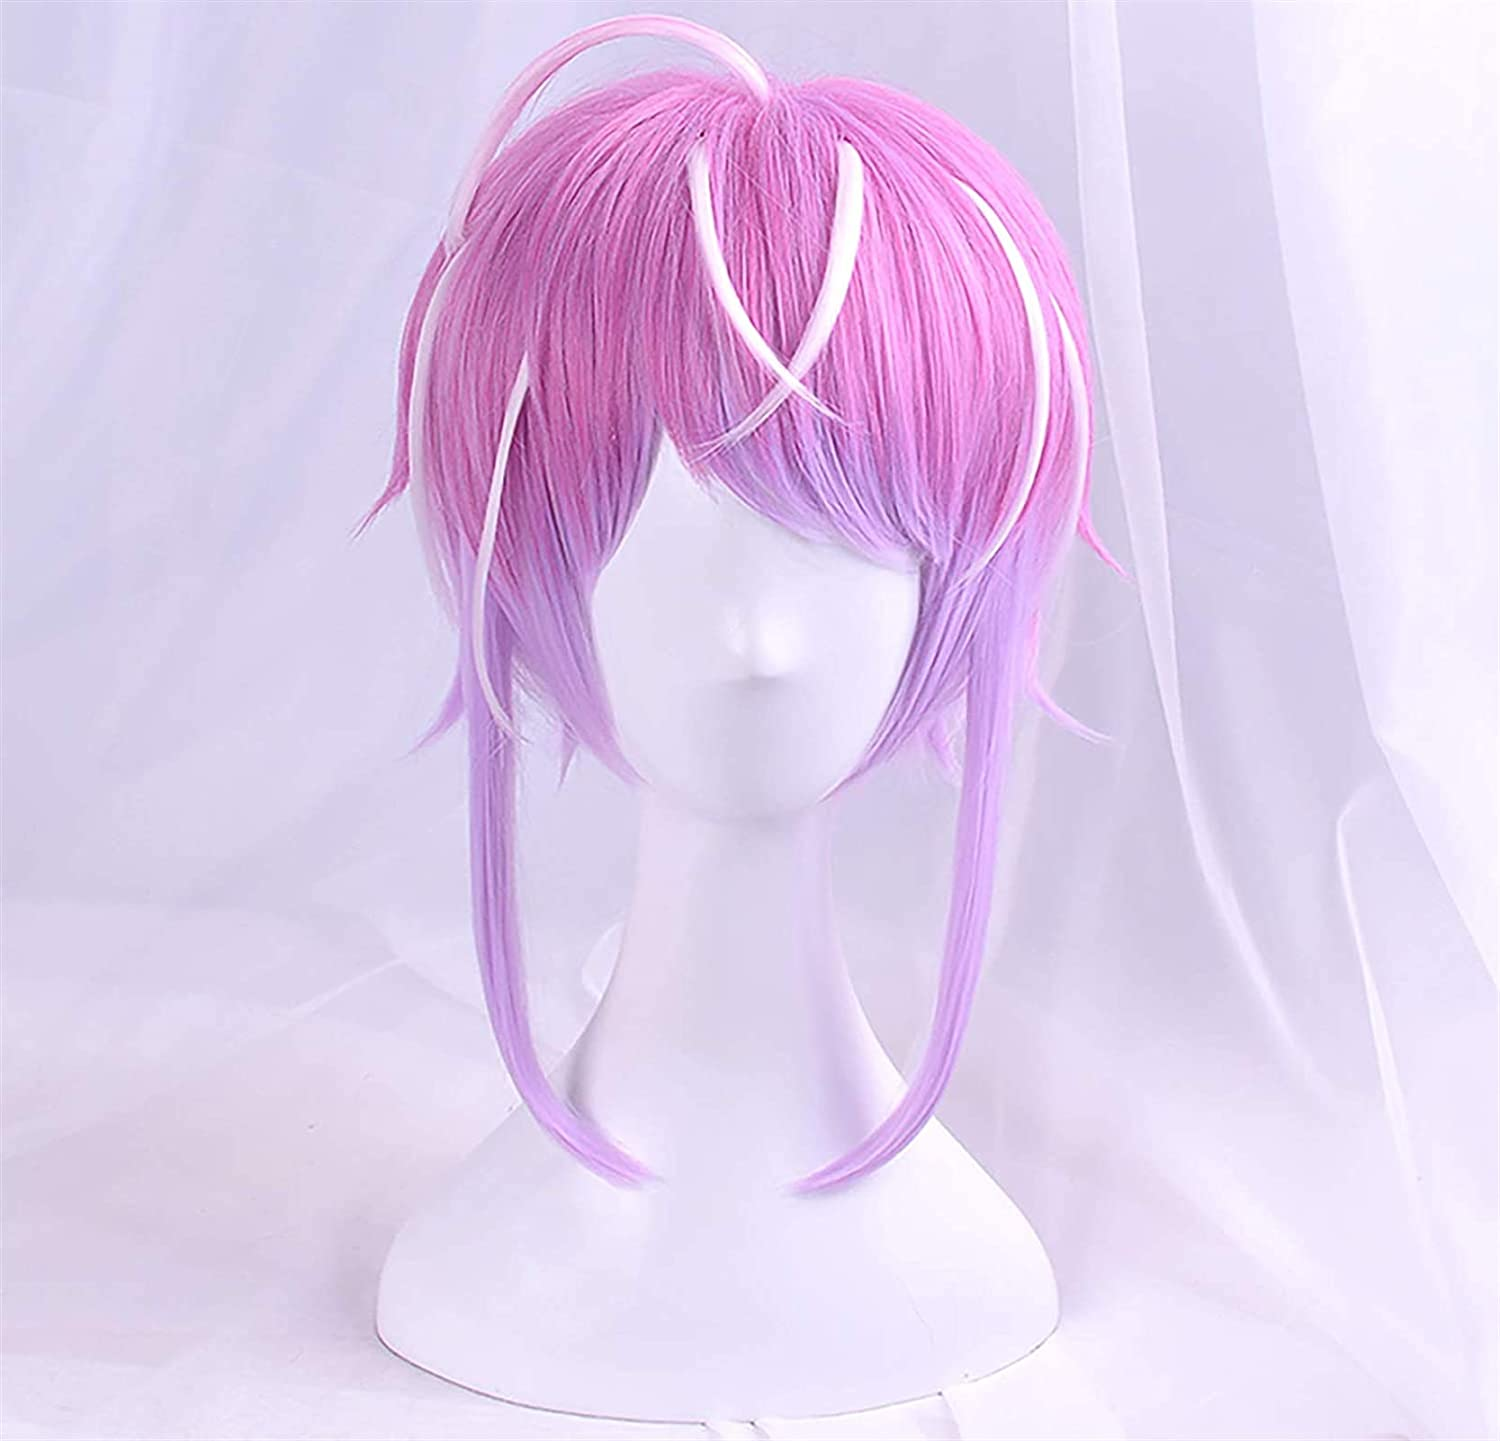 LCNING Wig Max 89% OFF Wigs Pink Cosplay Anime for with Choice Fring Men Women